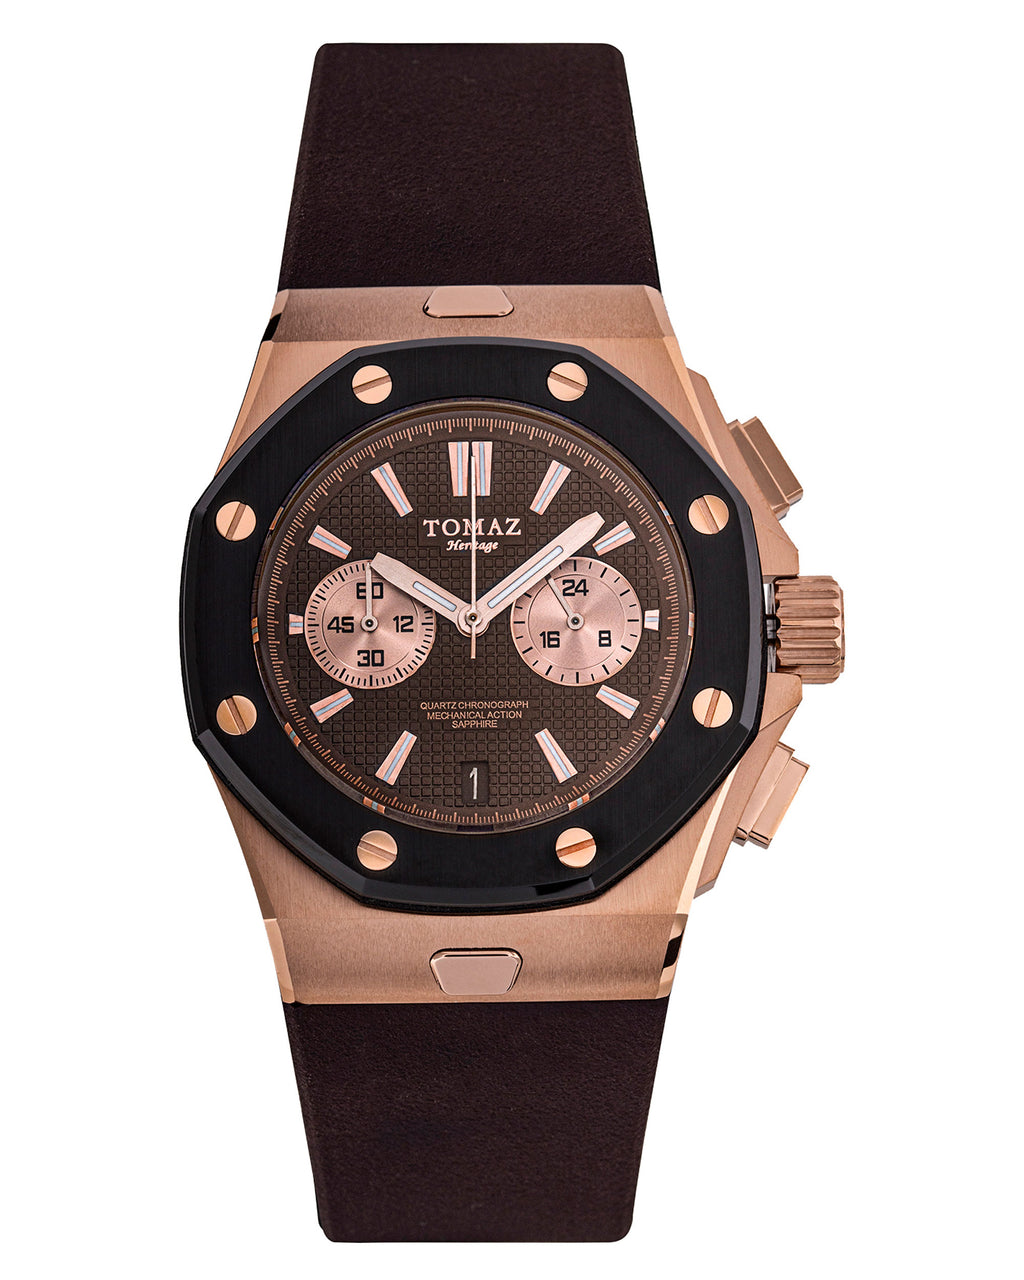 Tomaz TQ011-D4 Men's Watch (RoseGold/Coffee)